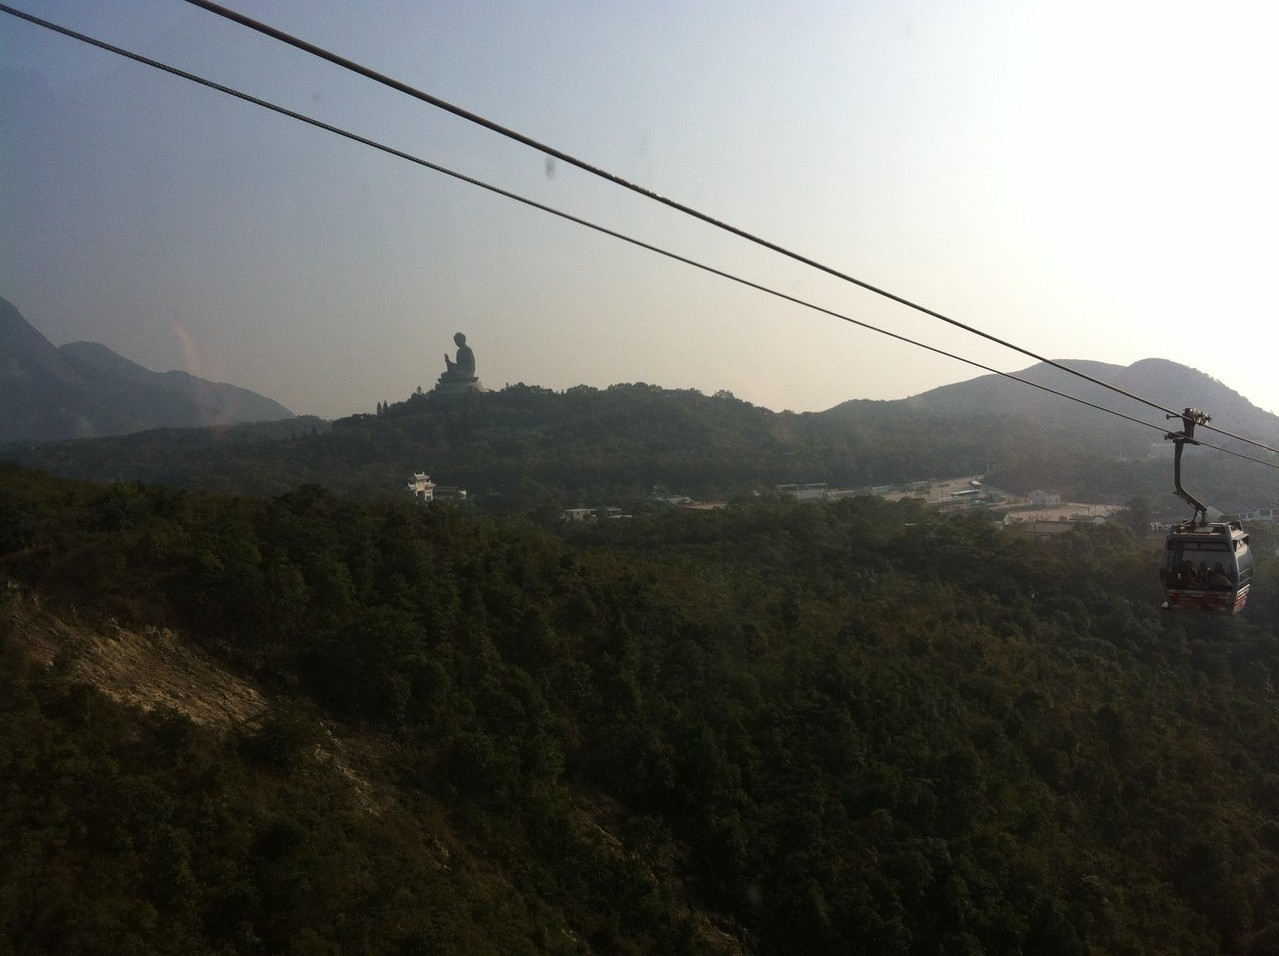 Finally we catch sight of our destination ... the huge buddha built on top of the hill — at Ngong Ping Cable Car.